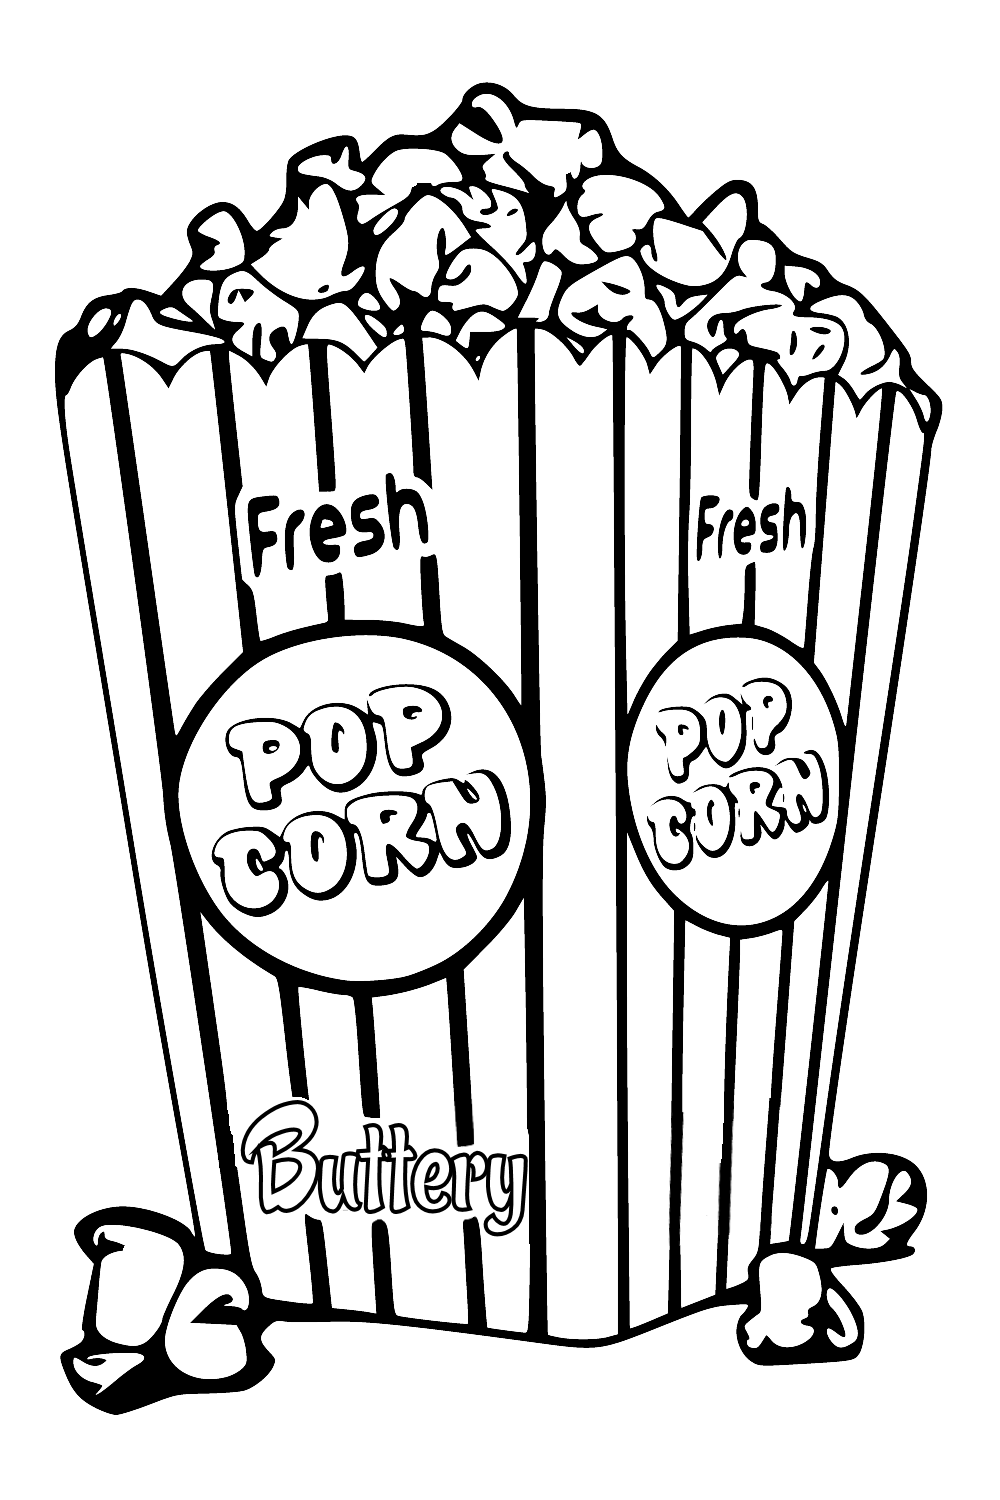 Saturday is Coloring pages, Colored popcorn